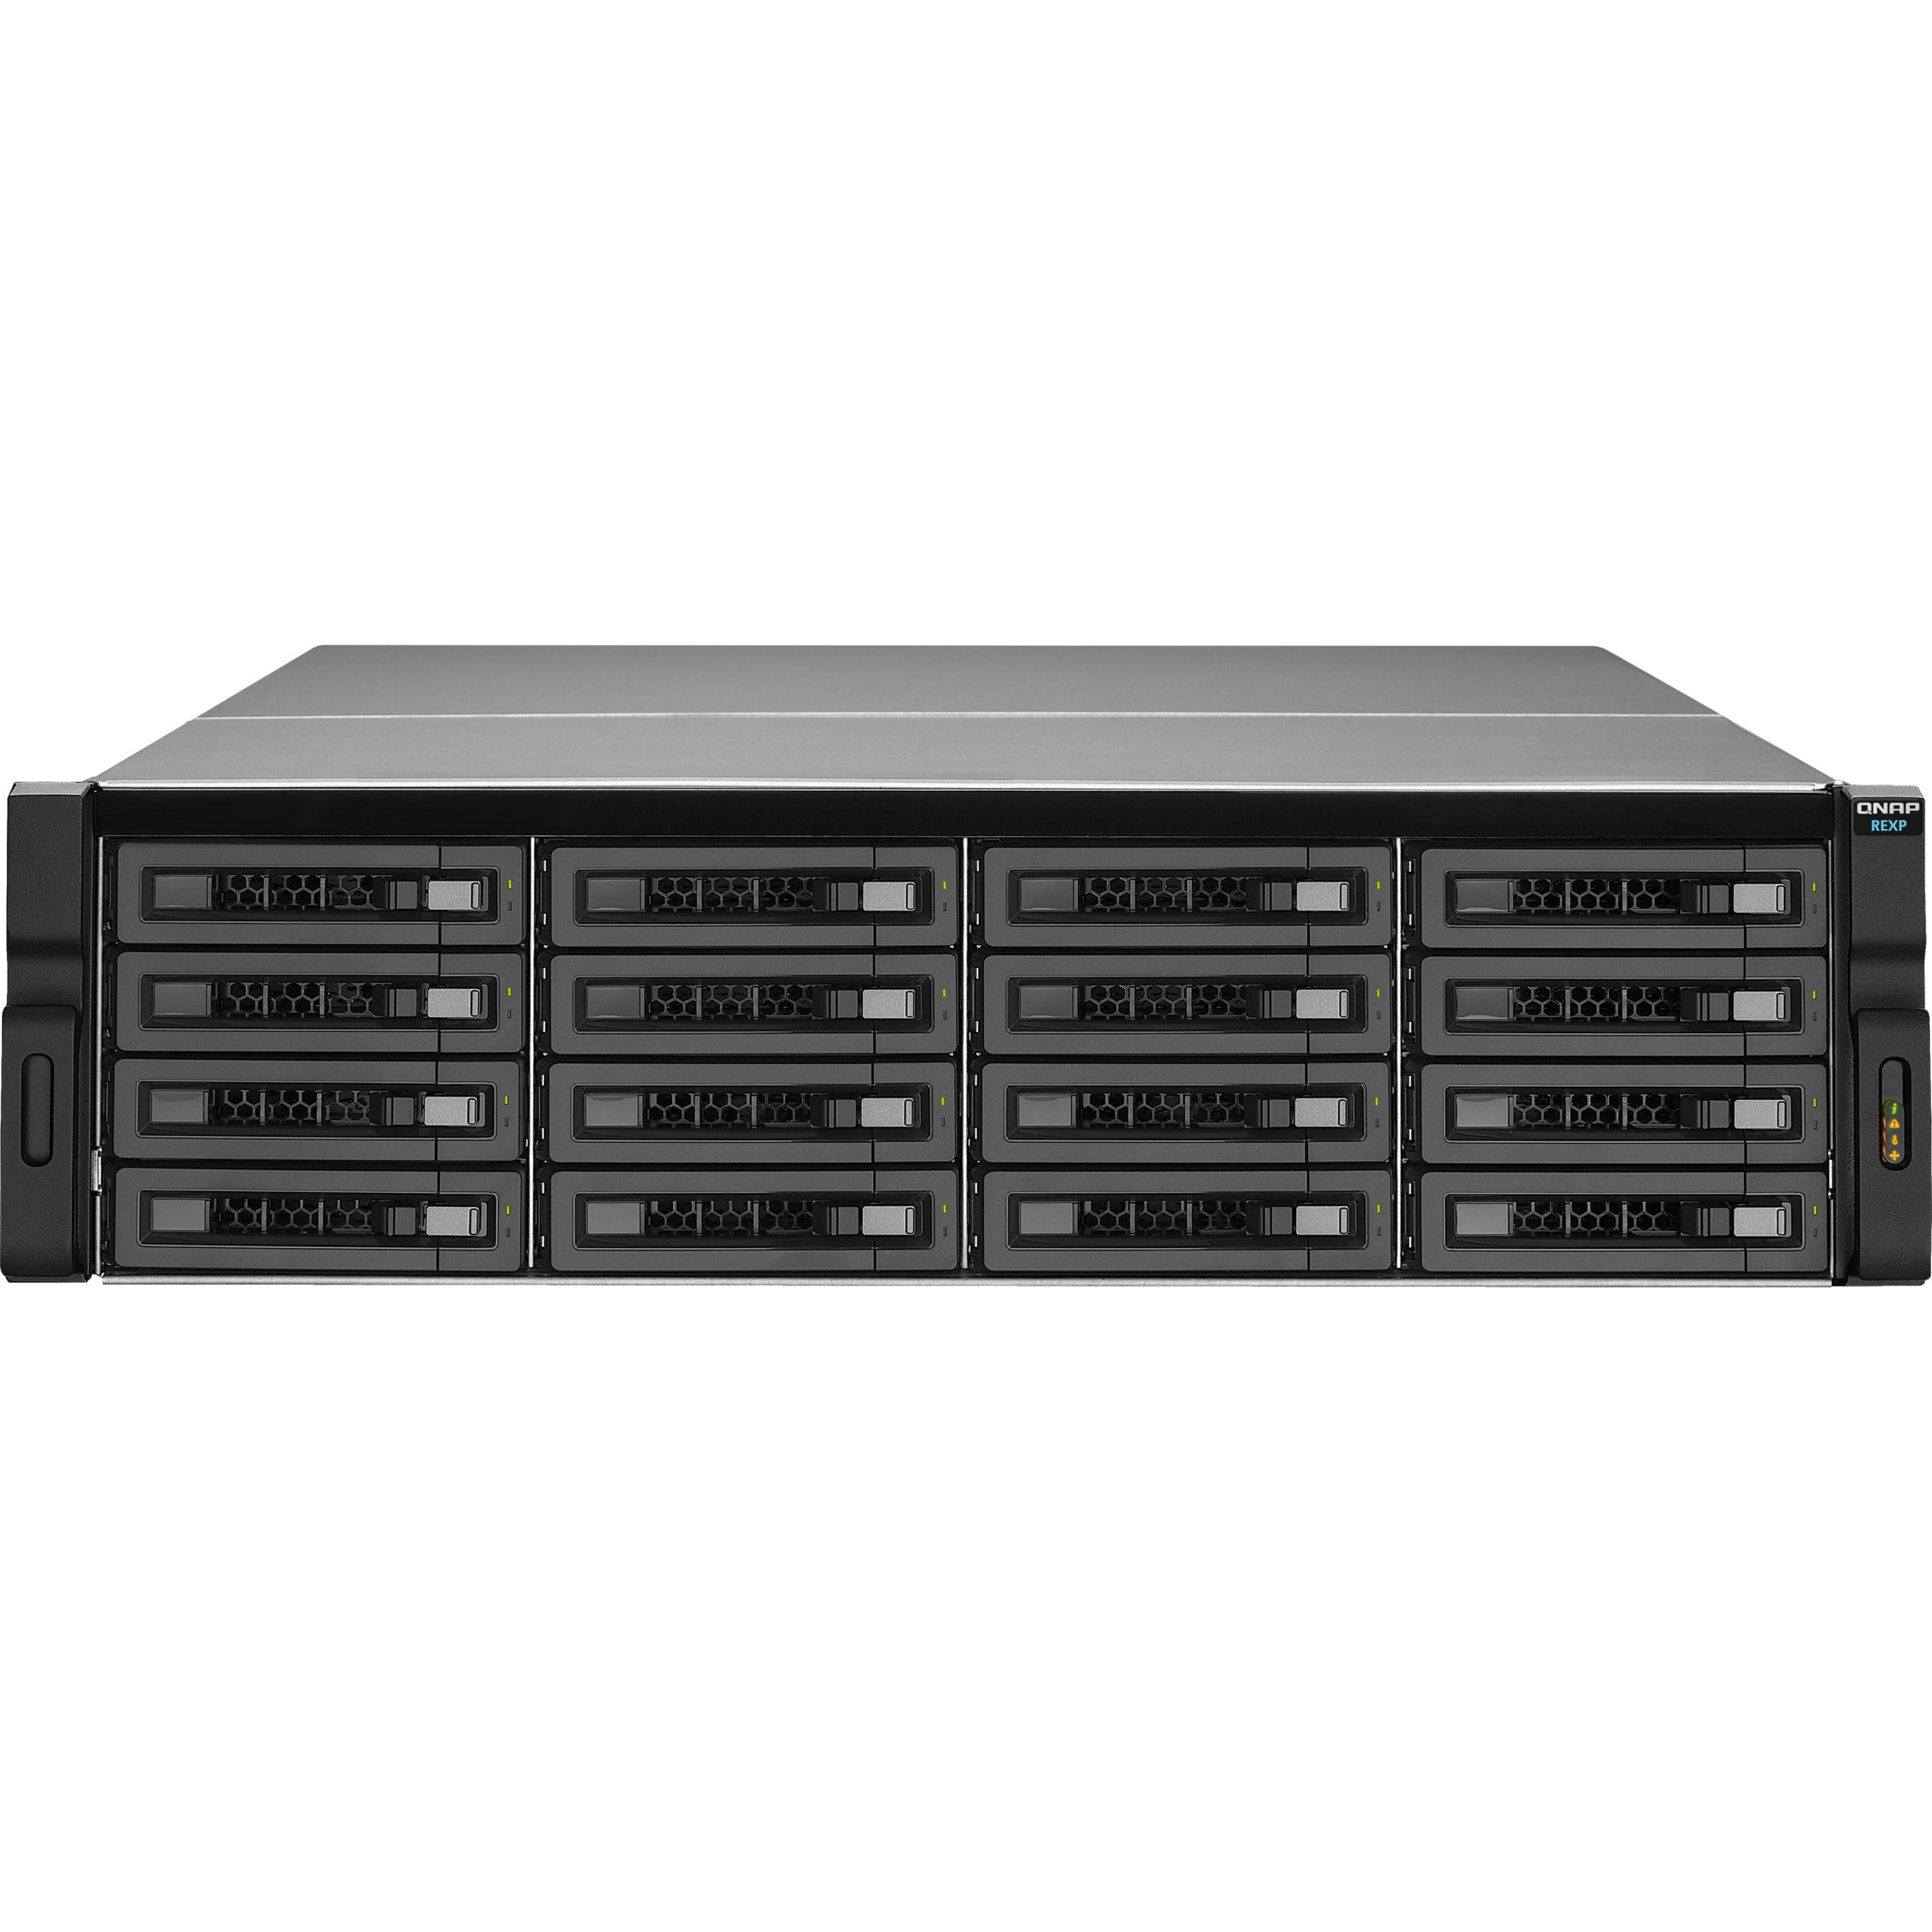 Qnap Rexp 1620u Rp Drive Enclosure 3u Rack Mountable